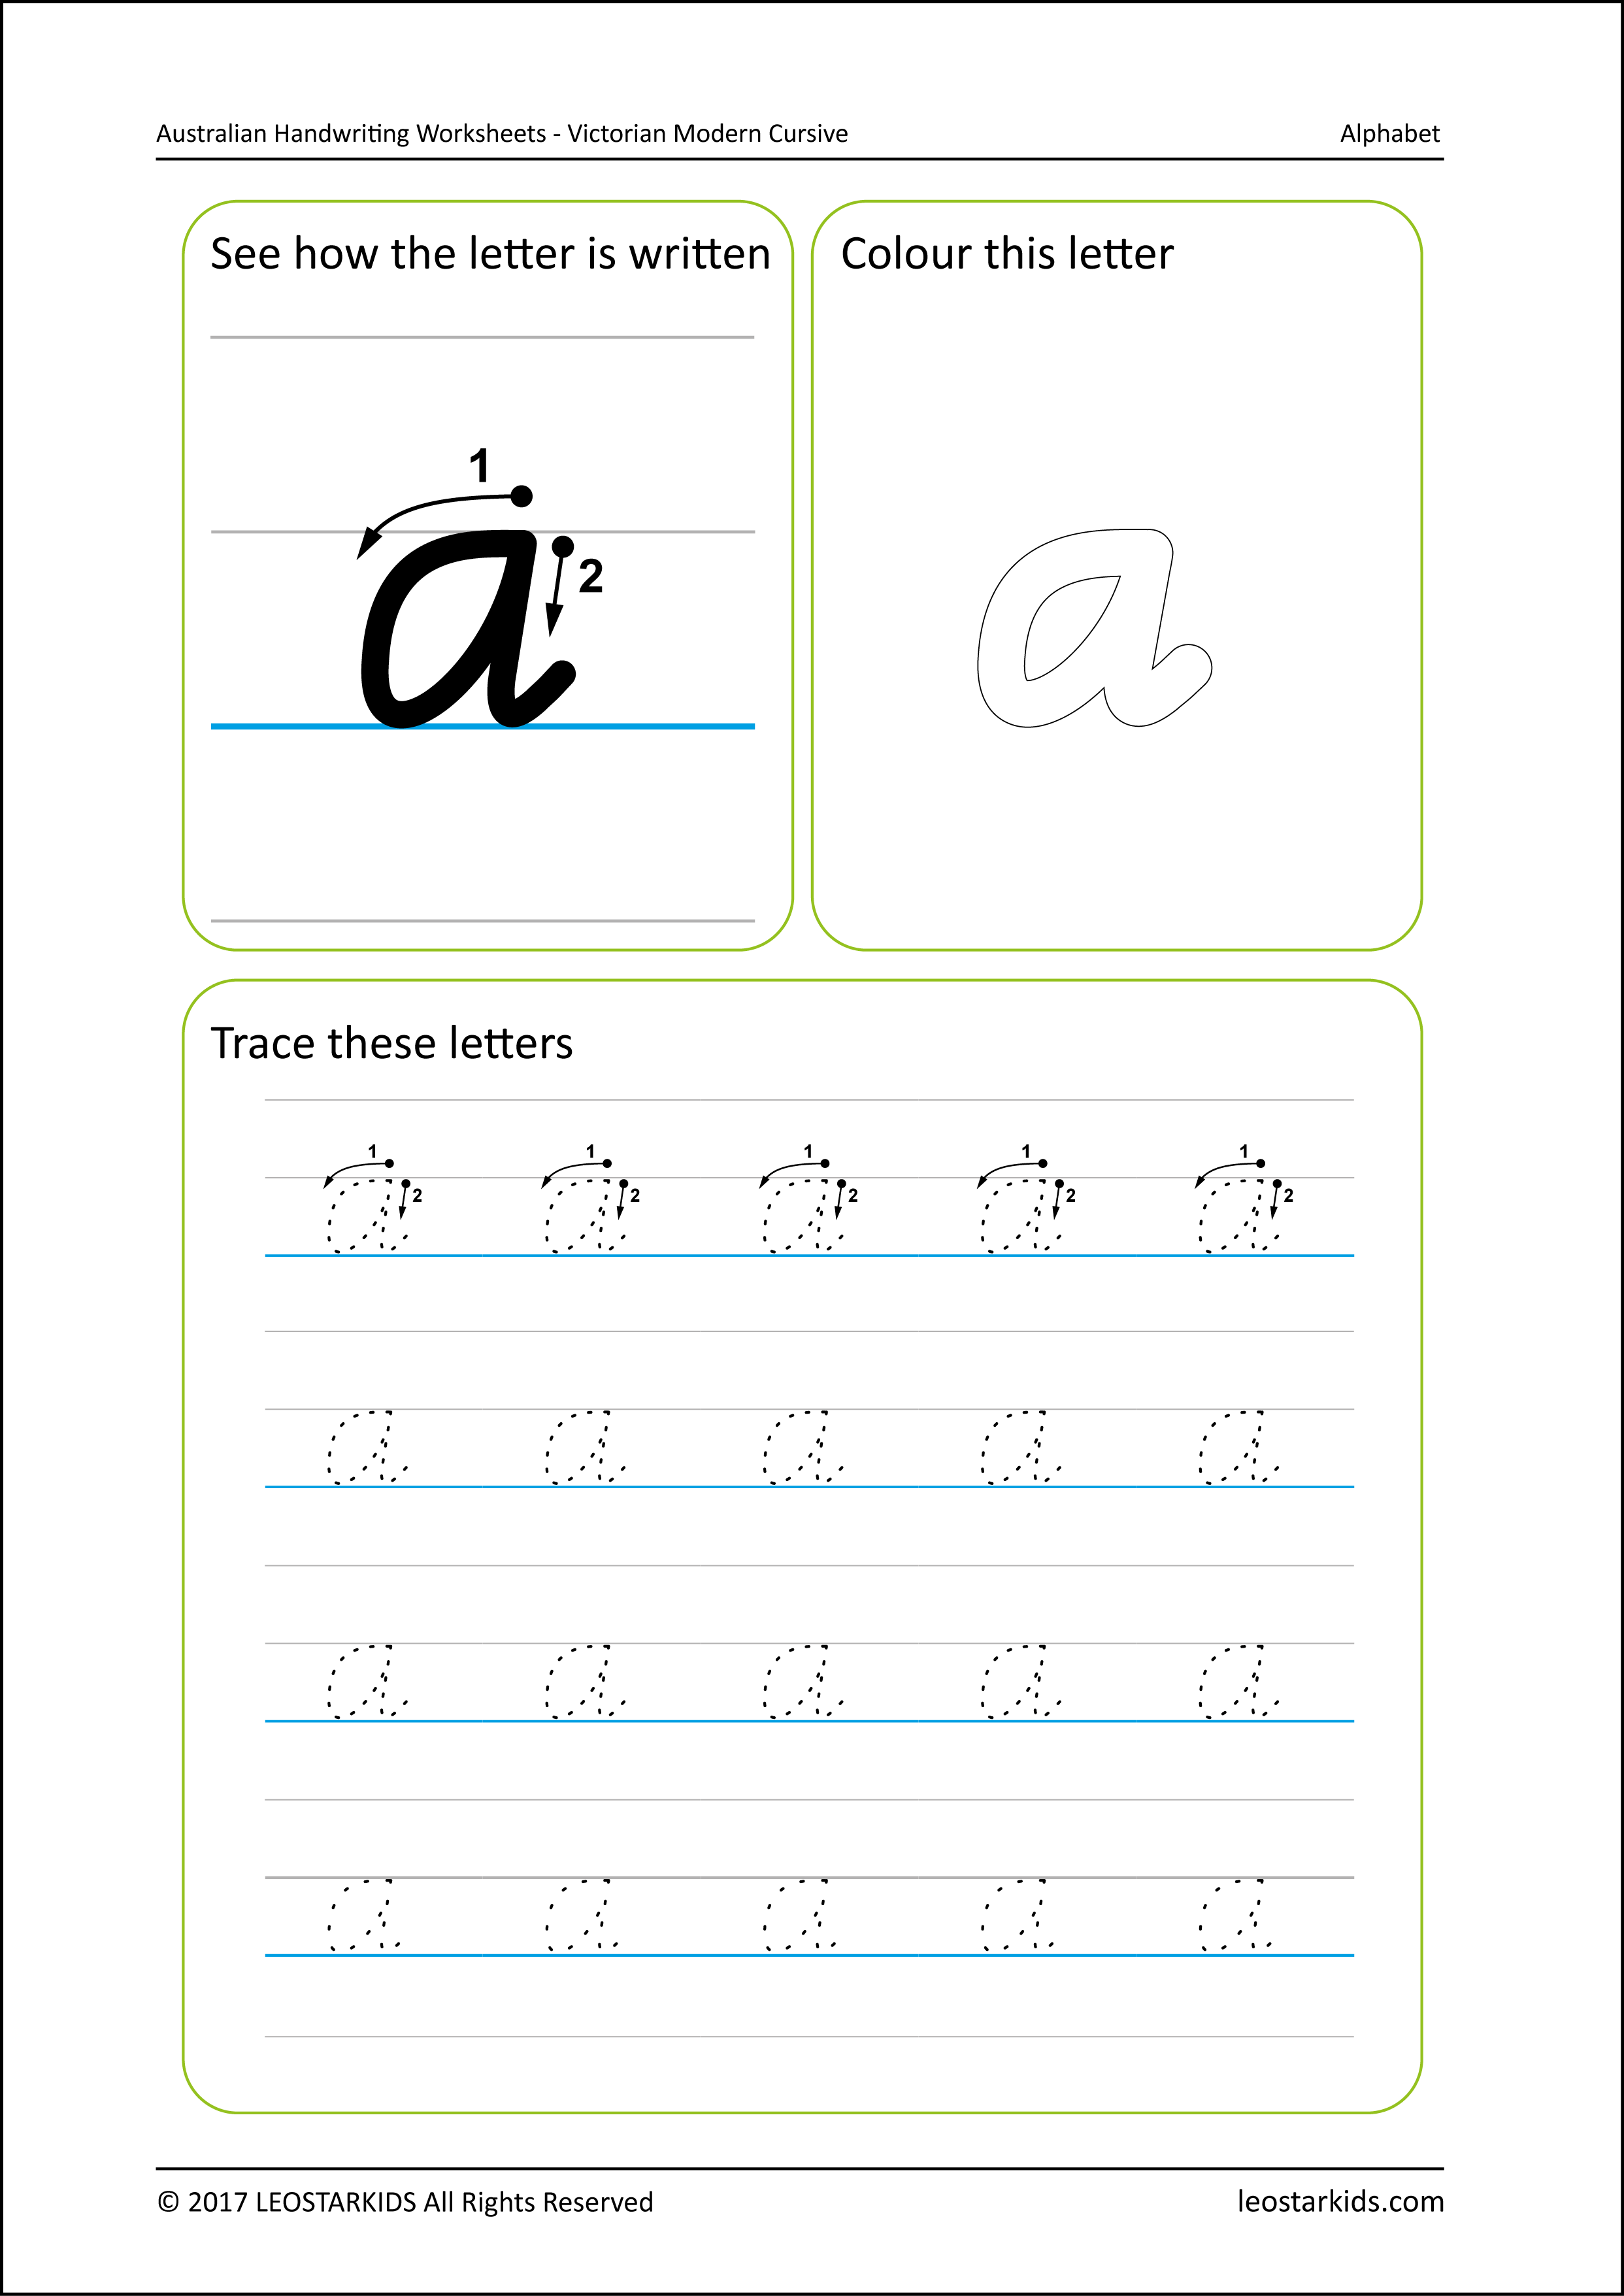 Australian Handwriting Worksheets